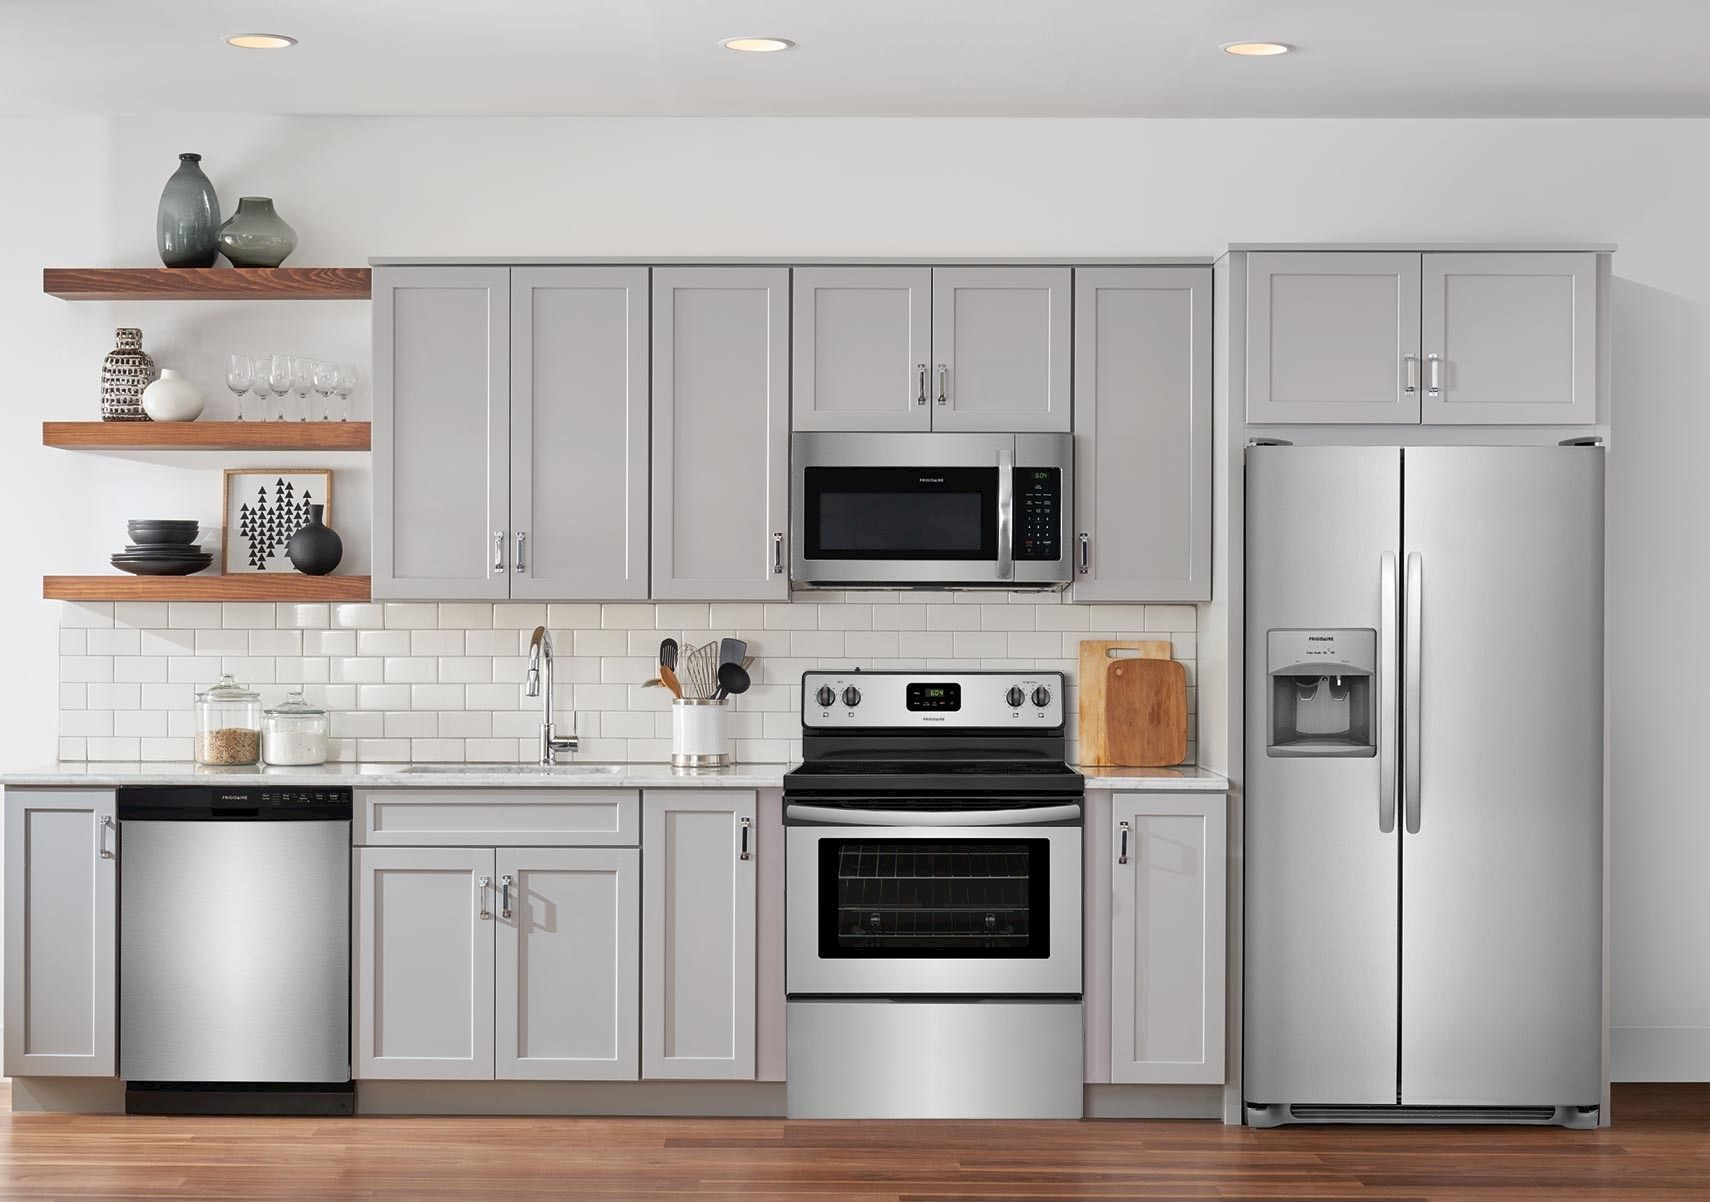 Lacks Frigidaire Stainless Steel Kitchen Appliance Package With B Black Stainless Steel Kitchen Stainless Steel Kitchen Appliances Kitchen Appliance Packages